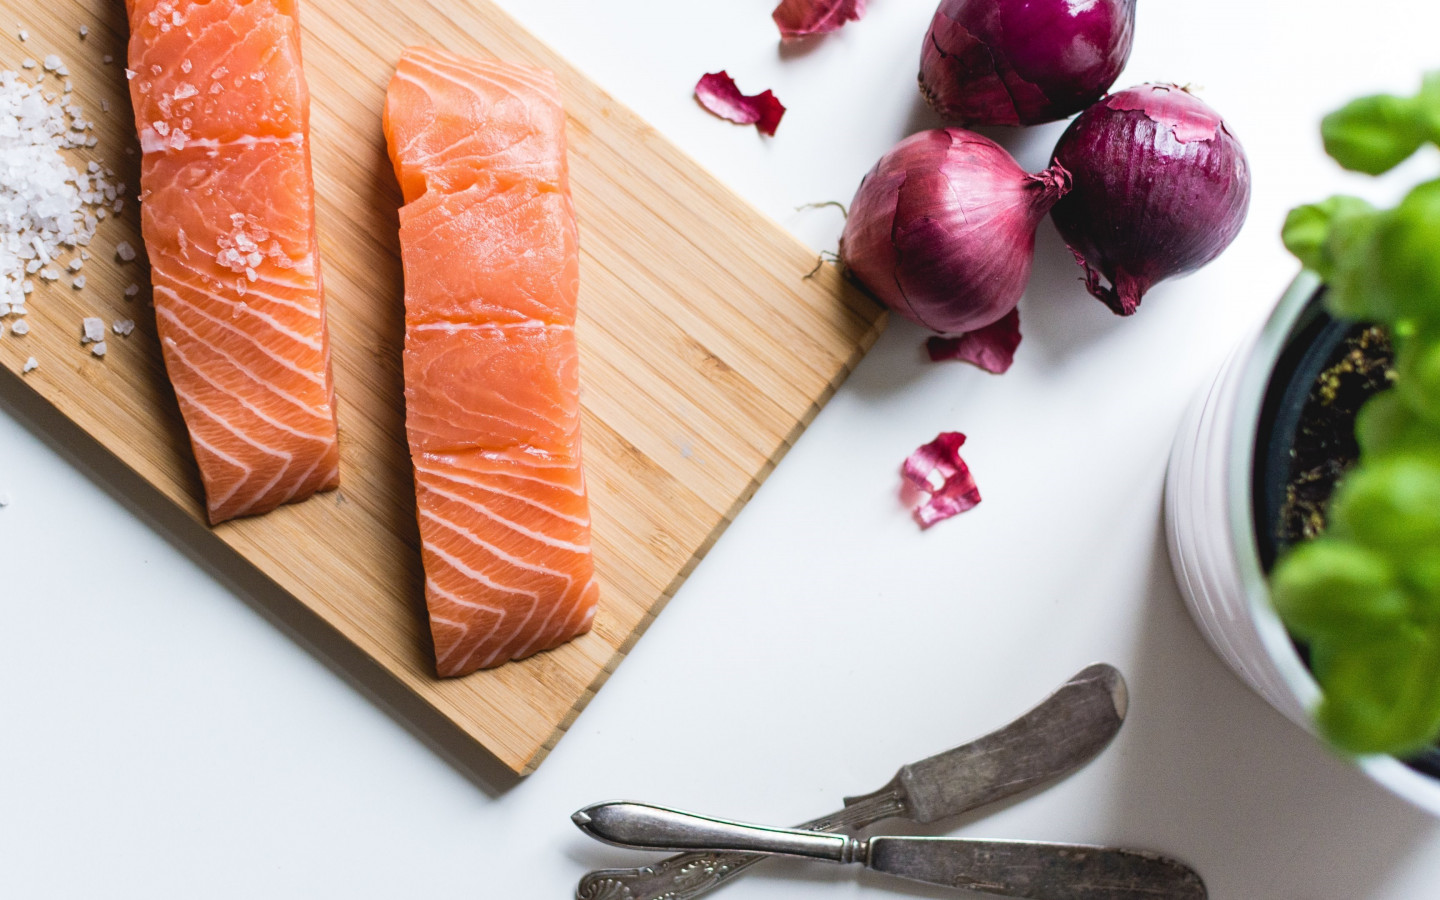 Salmon fillets wallpaper 1440x900